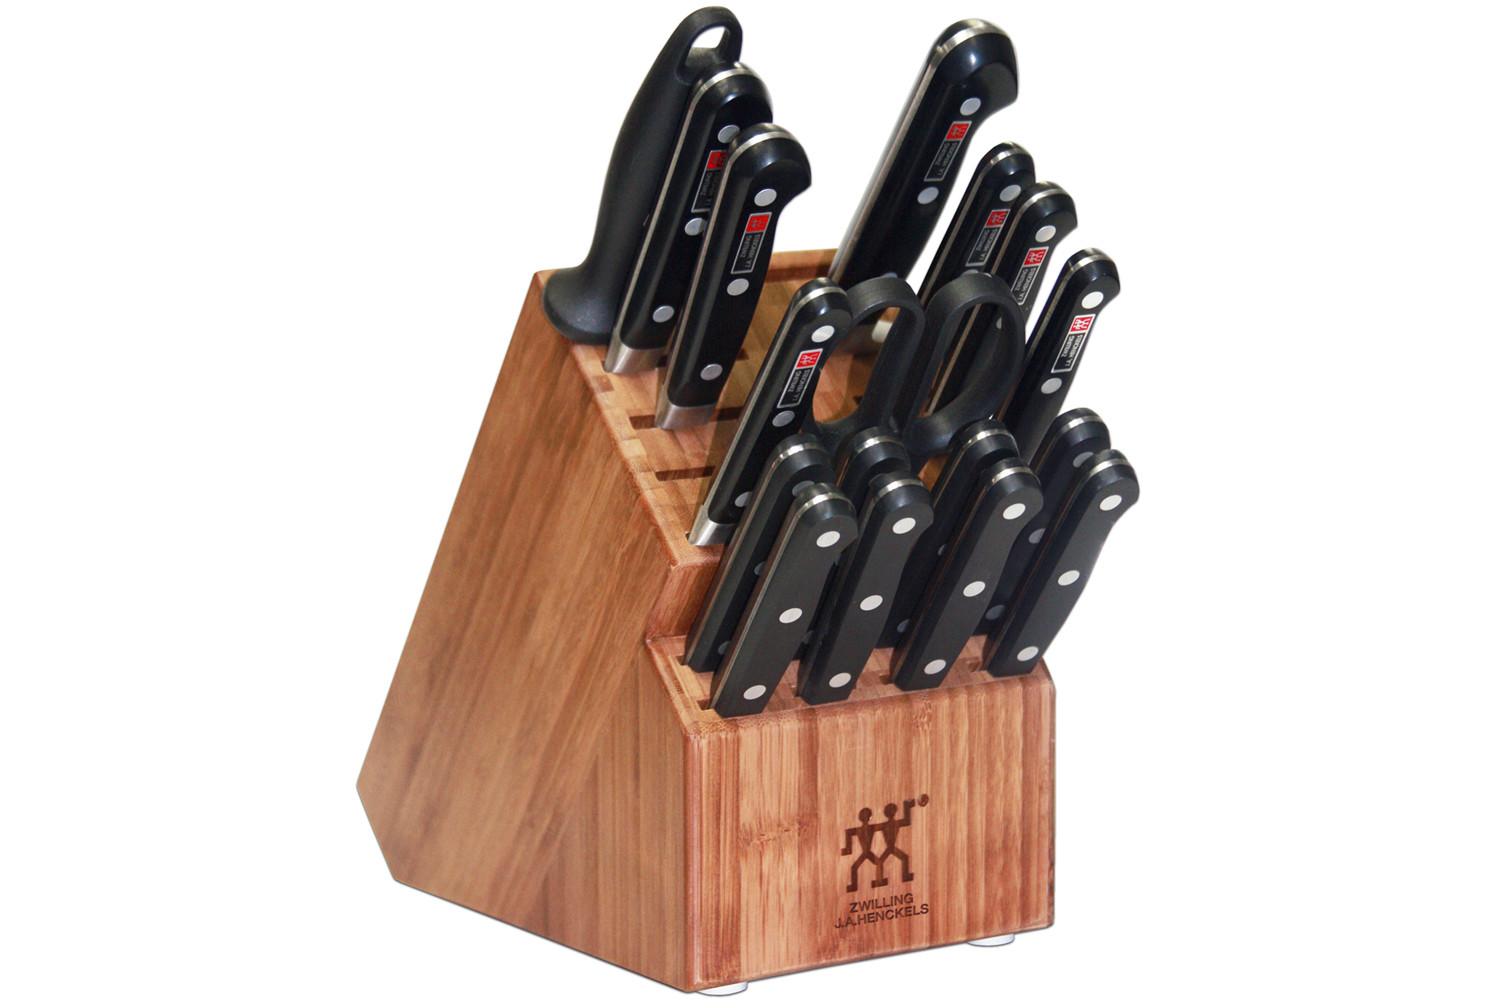 Henckels Pro S 18pc Knife Block Set 35617 100 Metrokitchen